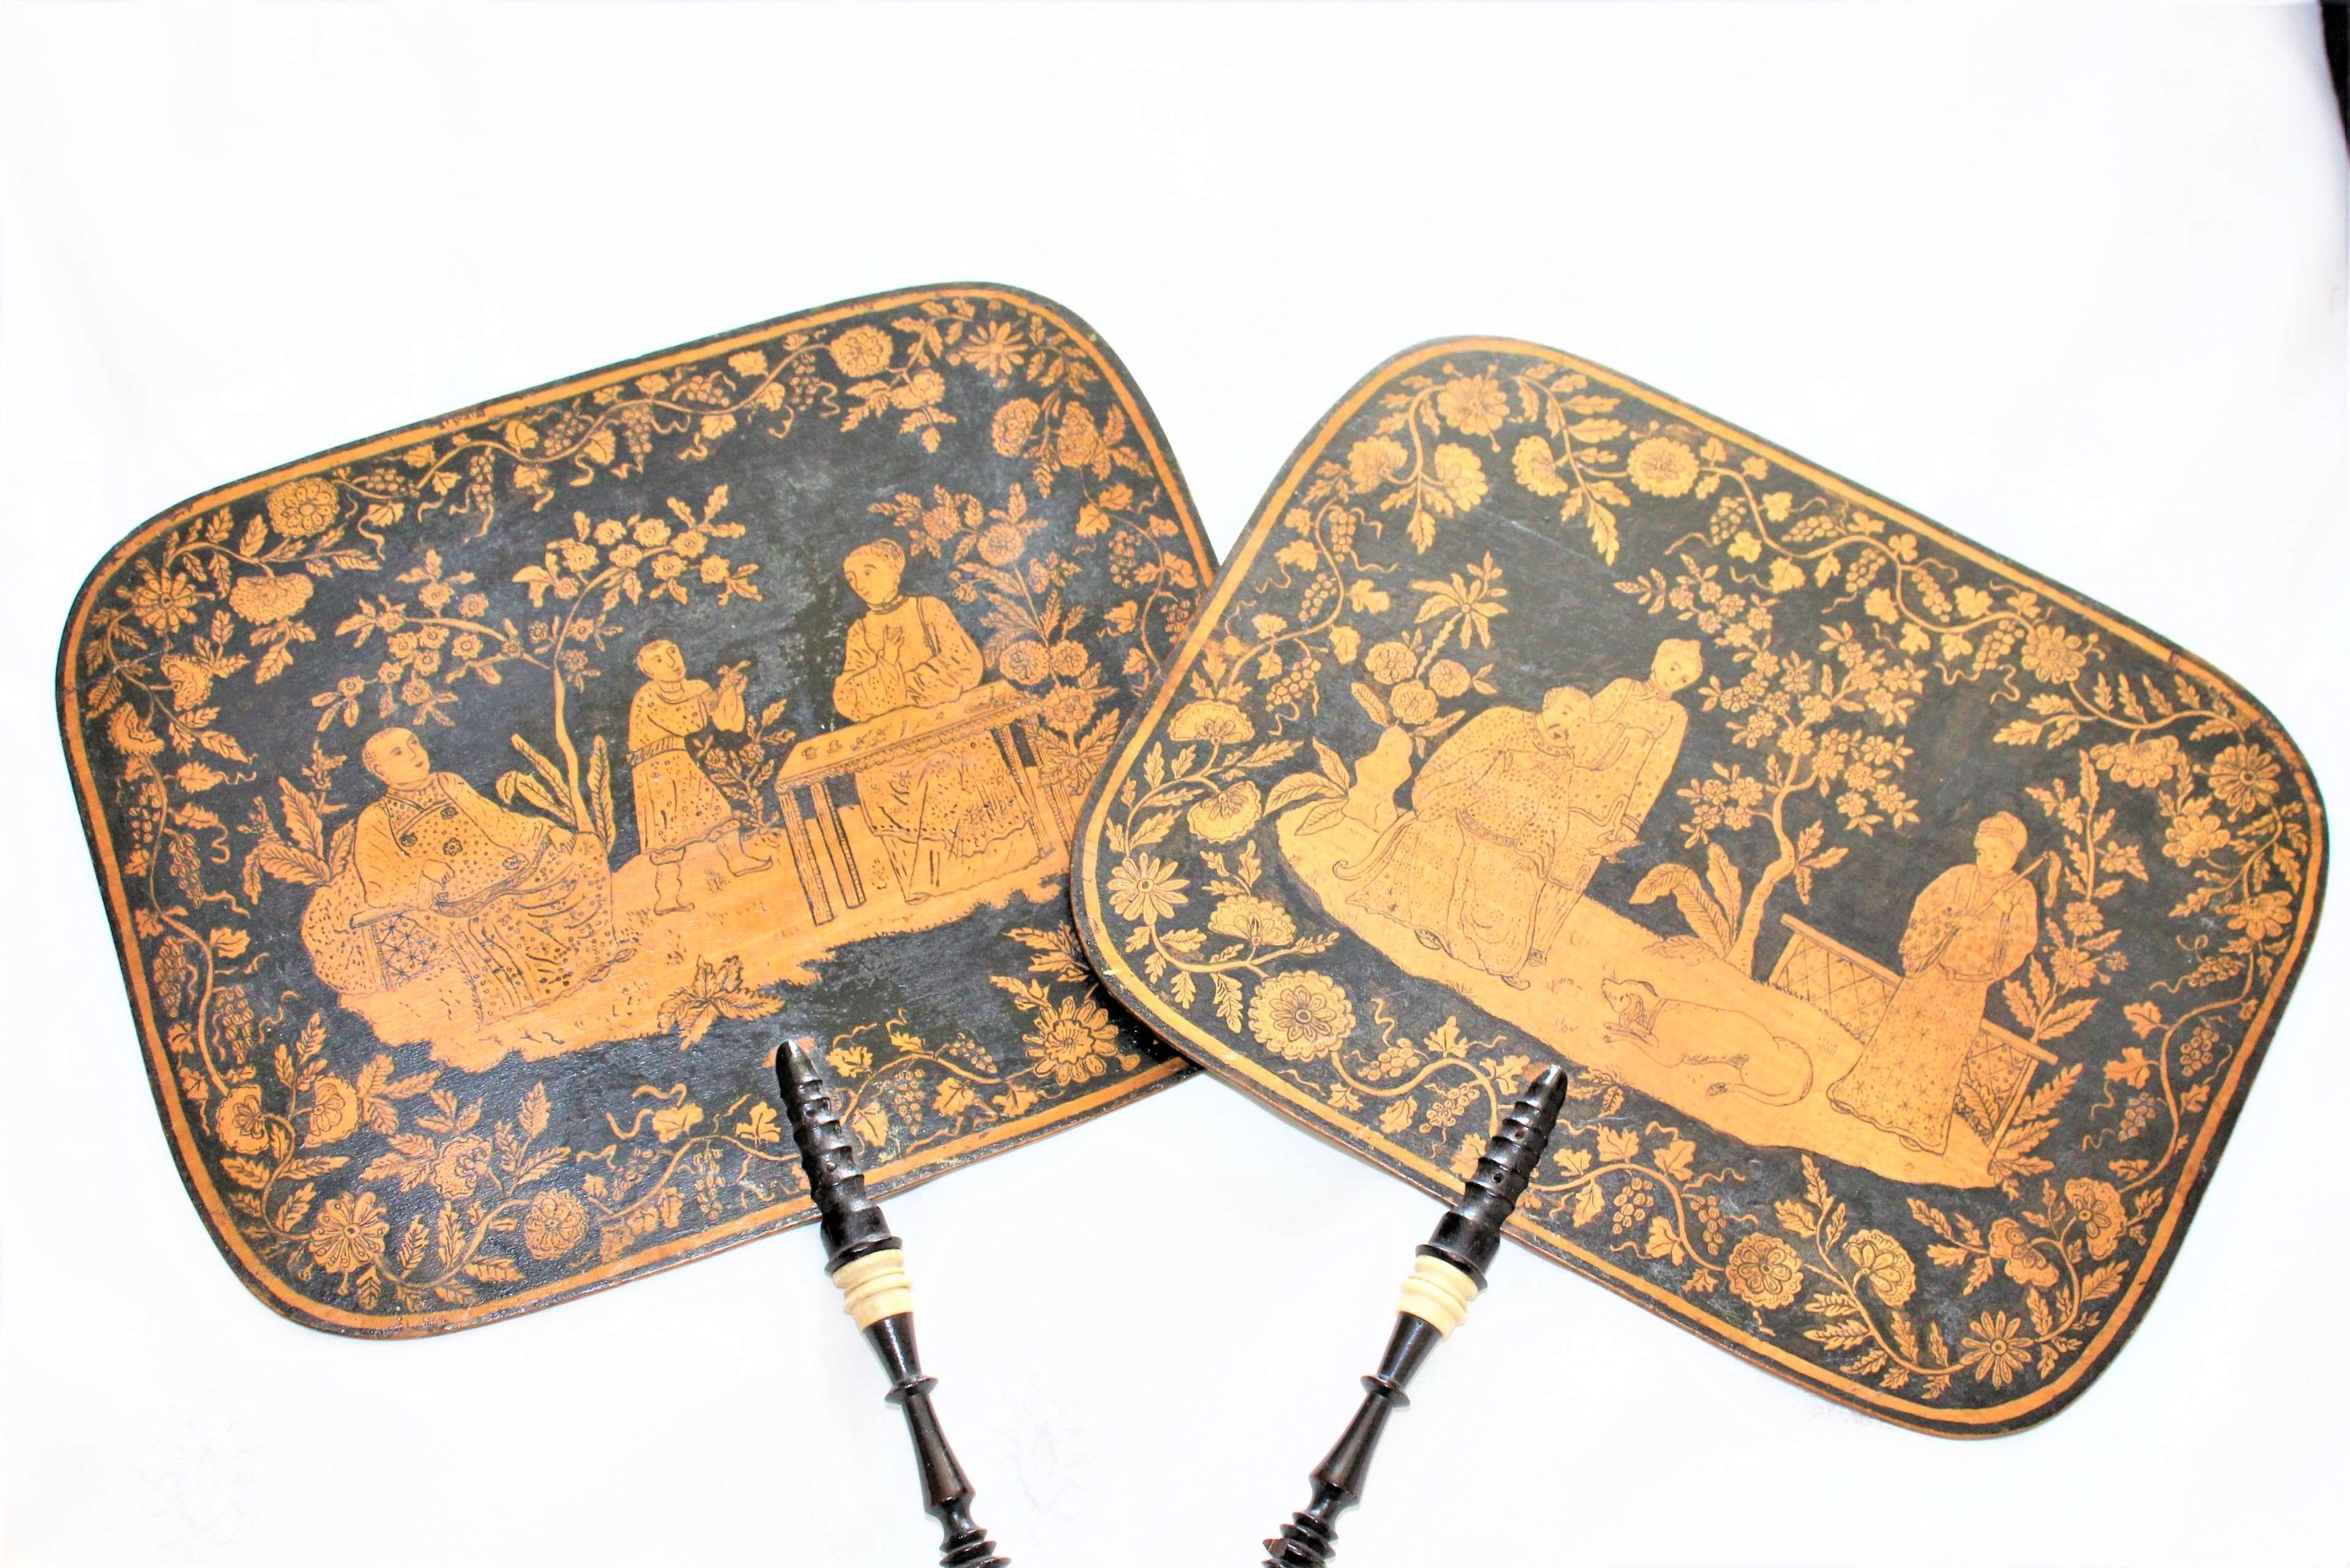 A fine pair of Regency penwork face screens in the chinoiserie style